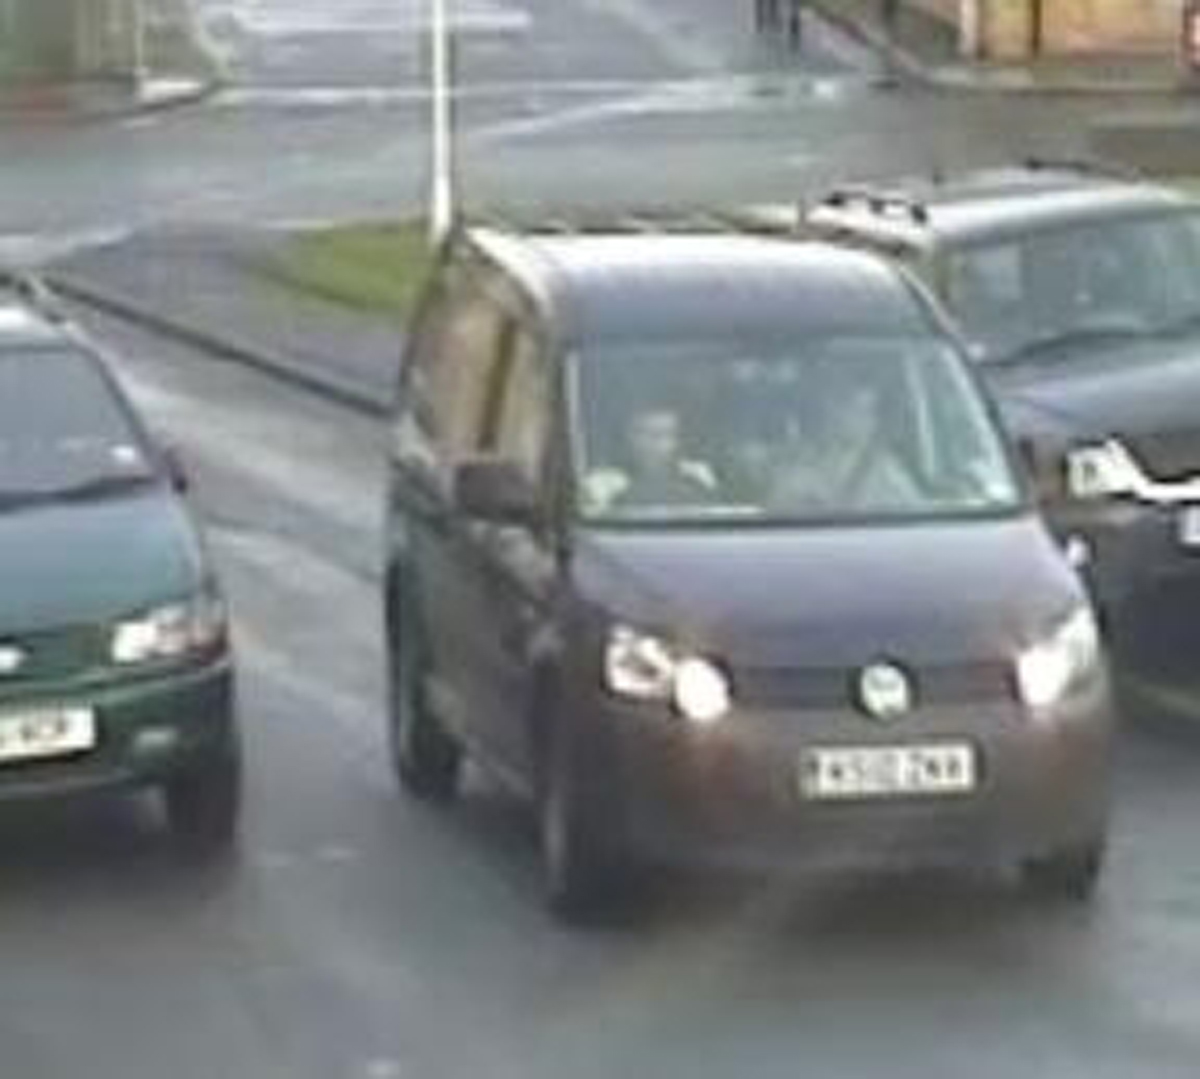 Police release CCTV images after £100k raid on Mini Sport in Padiham